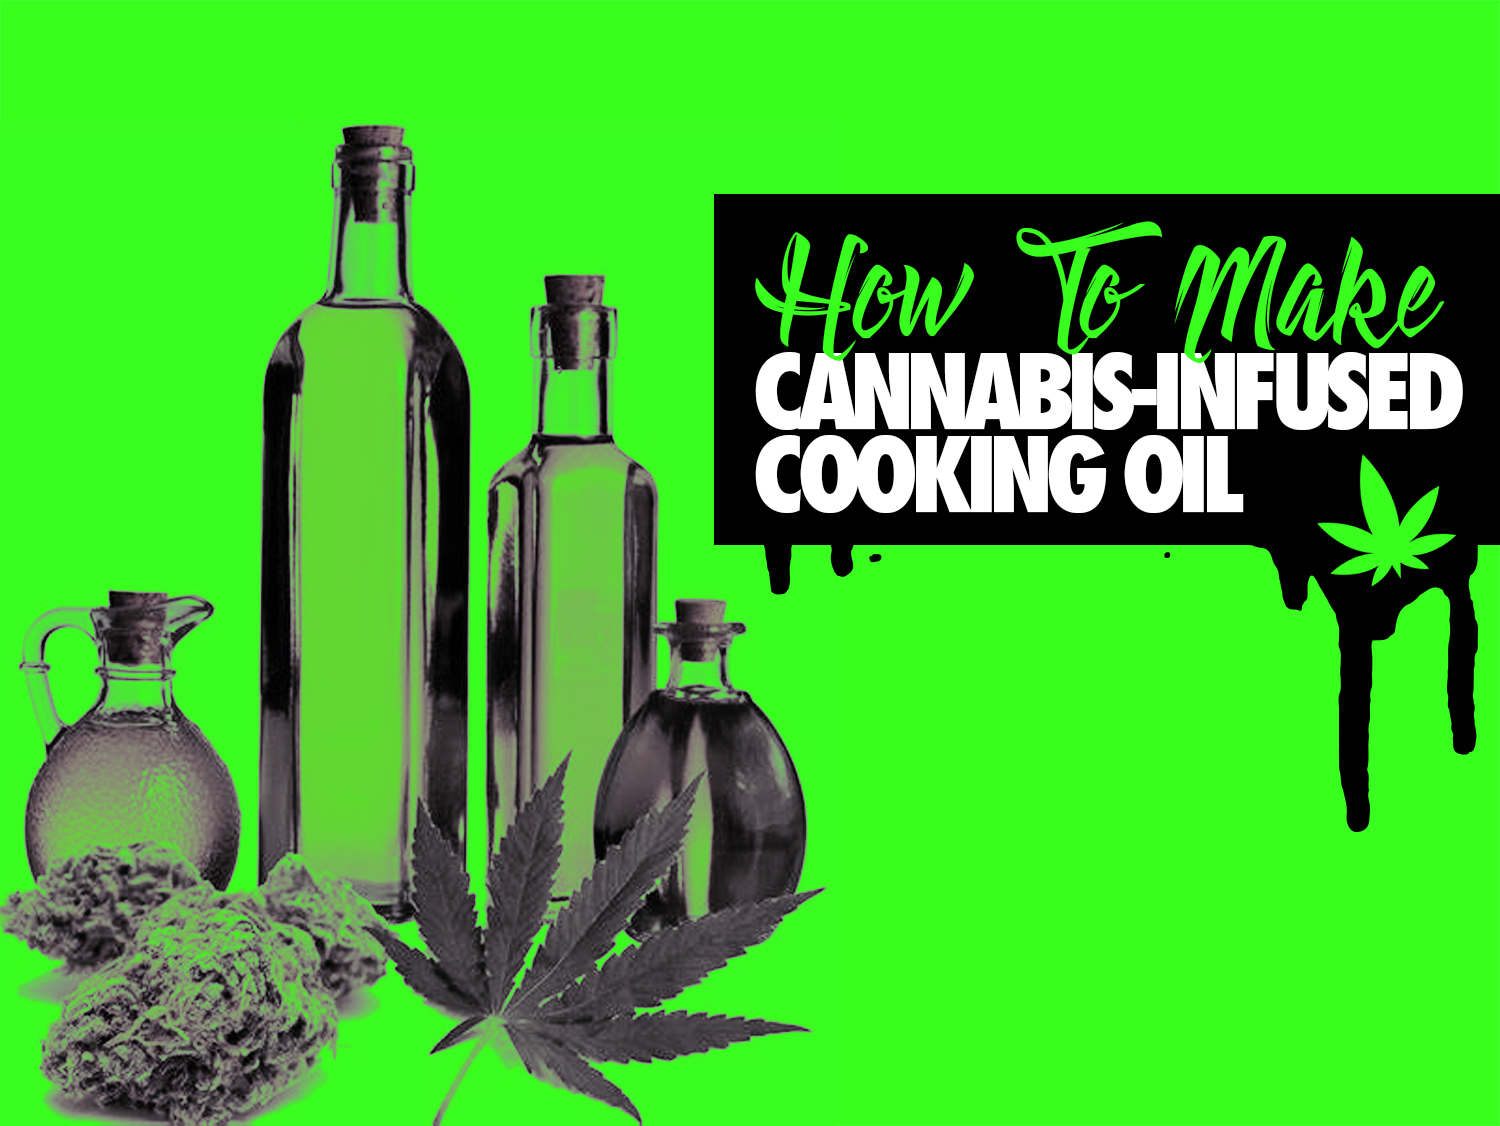 How to Make Cannabis-Infused Cooking Oil